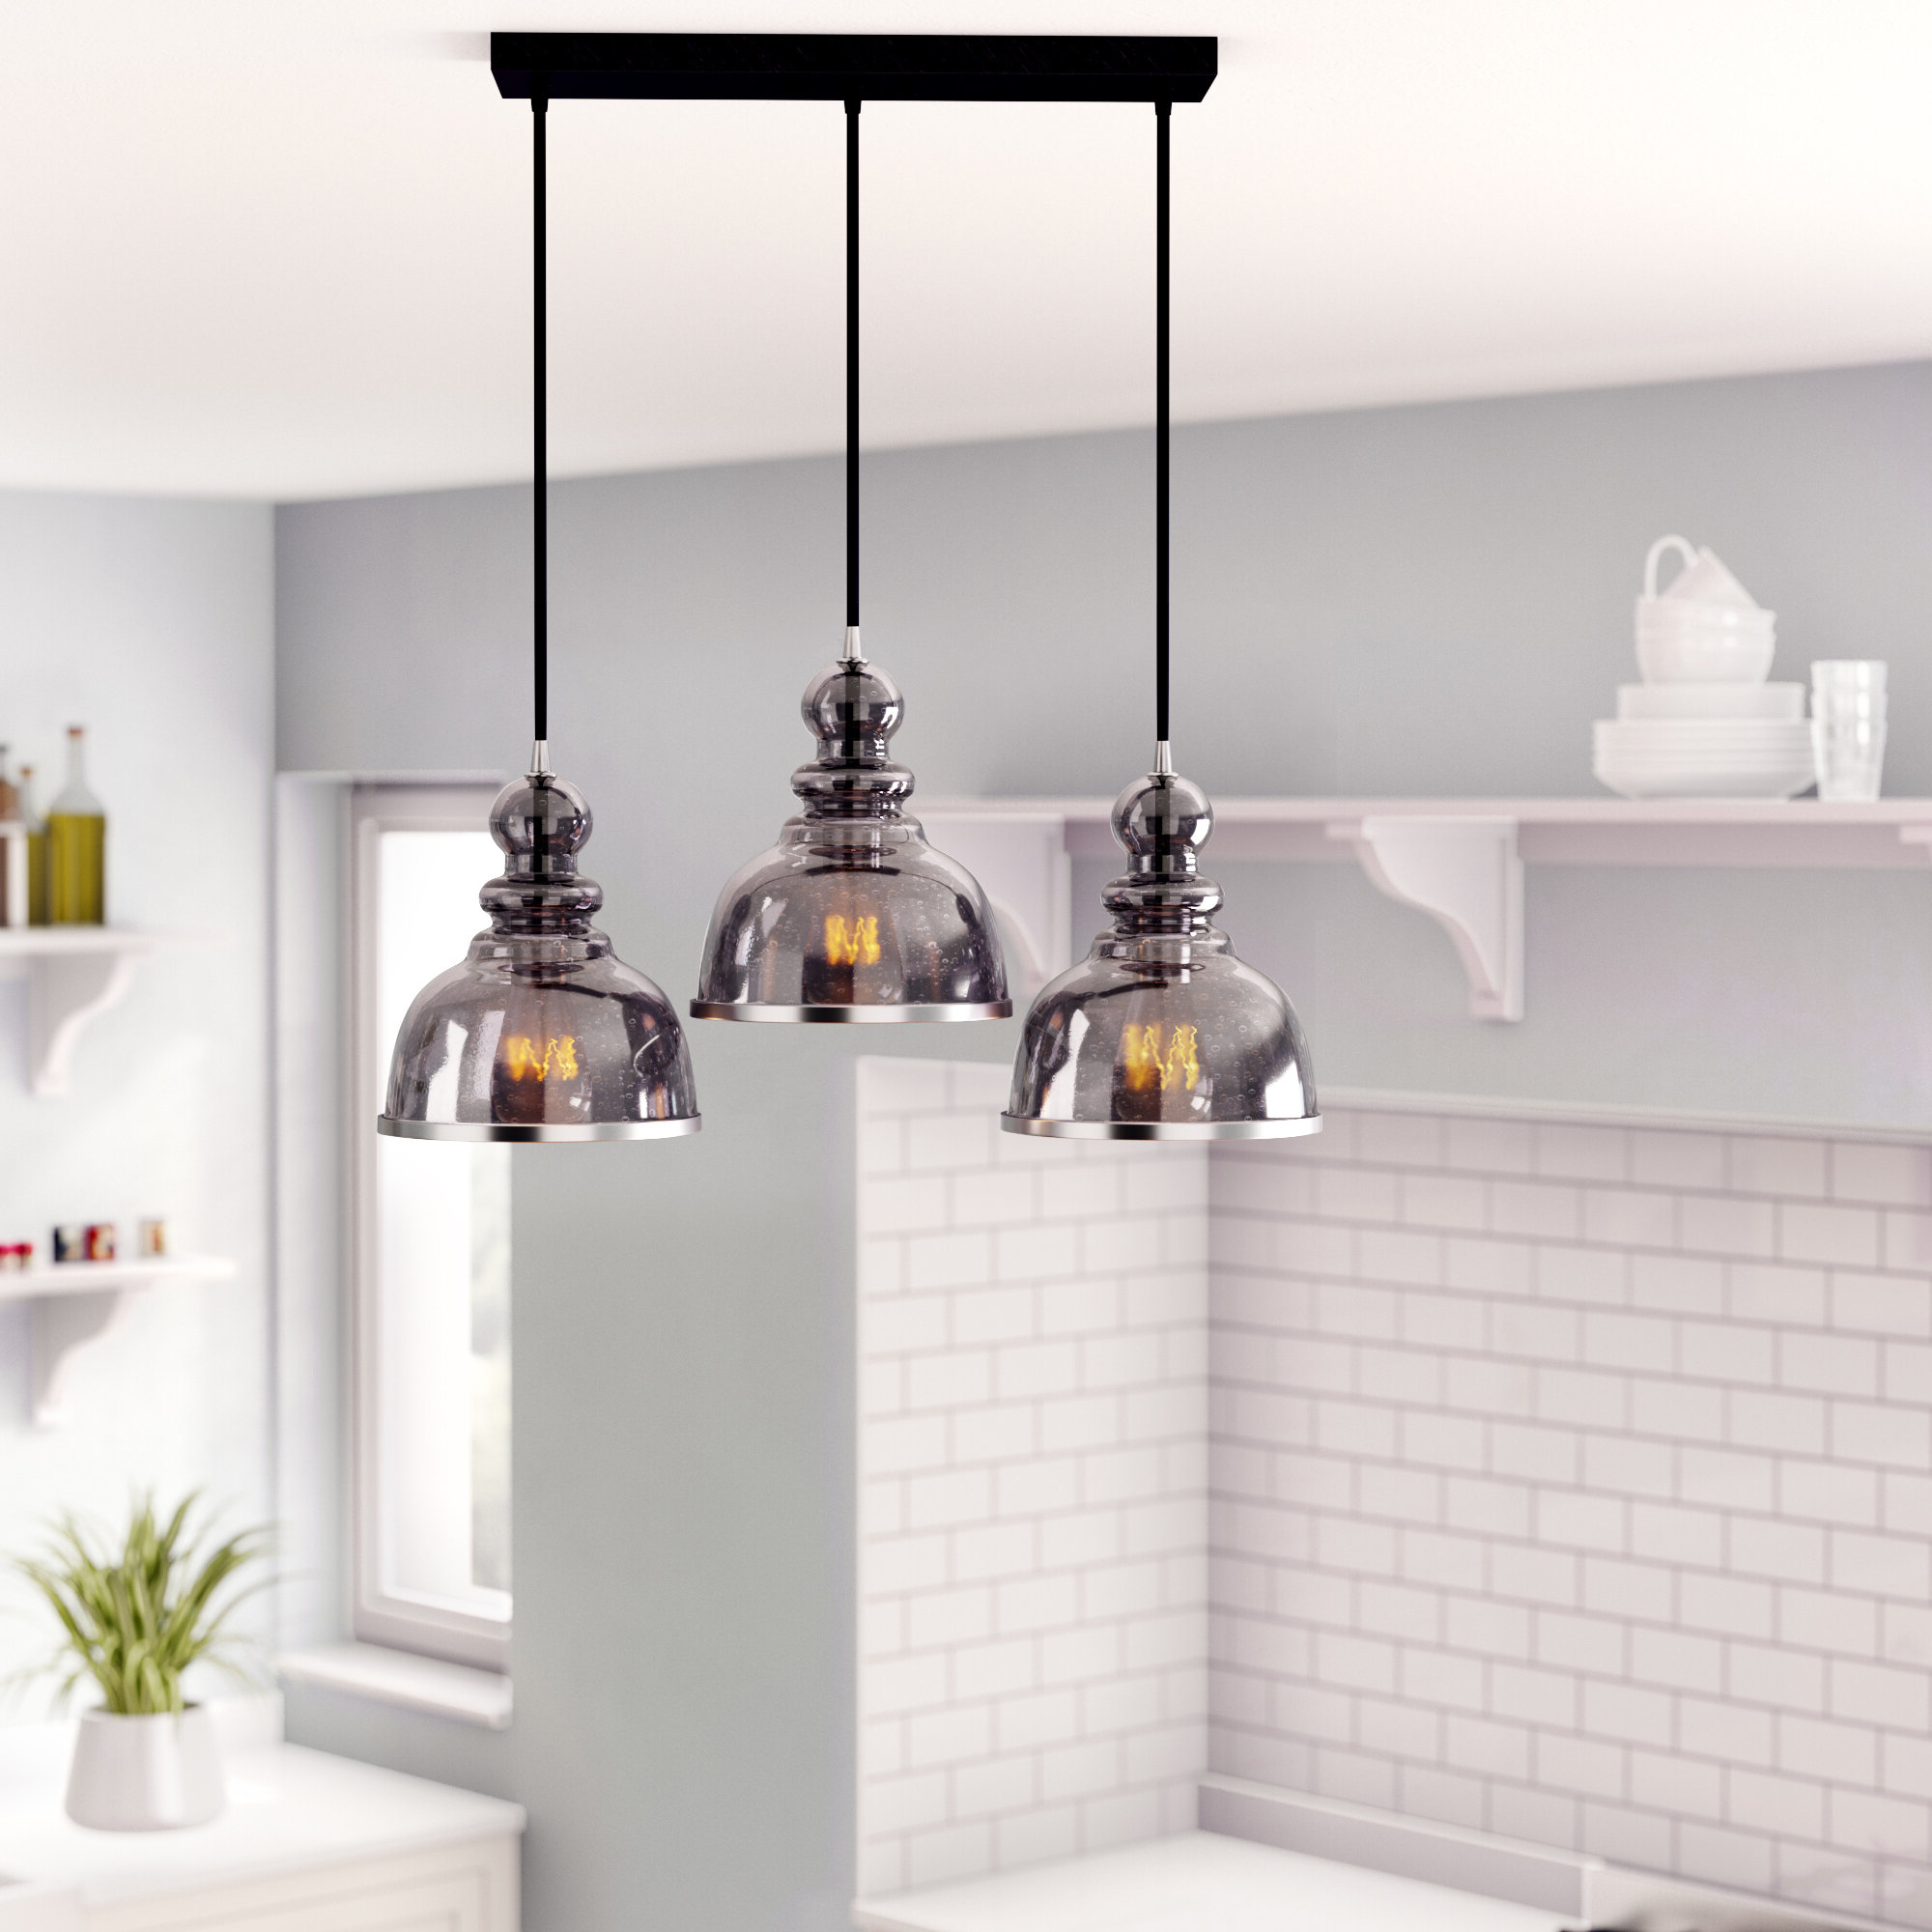 Widely Used Martinique 3 Light Kitchen Island Dome Pendants Regarding Kaci 3 Light Kitchen Island Pendant (View 25 of 25)